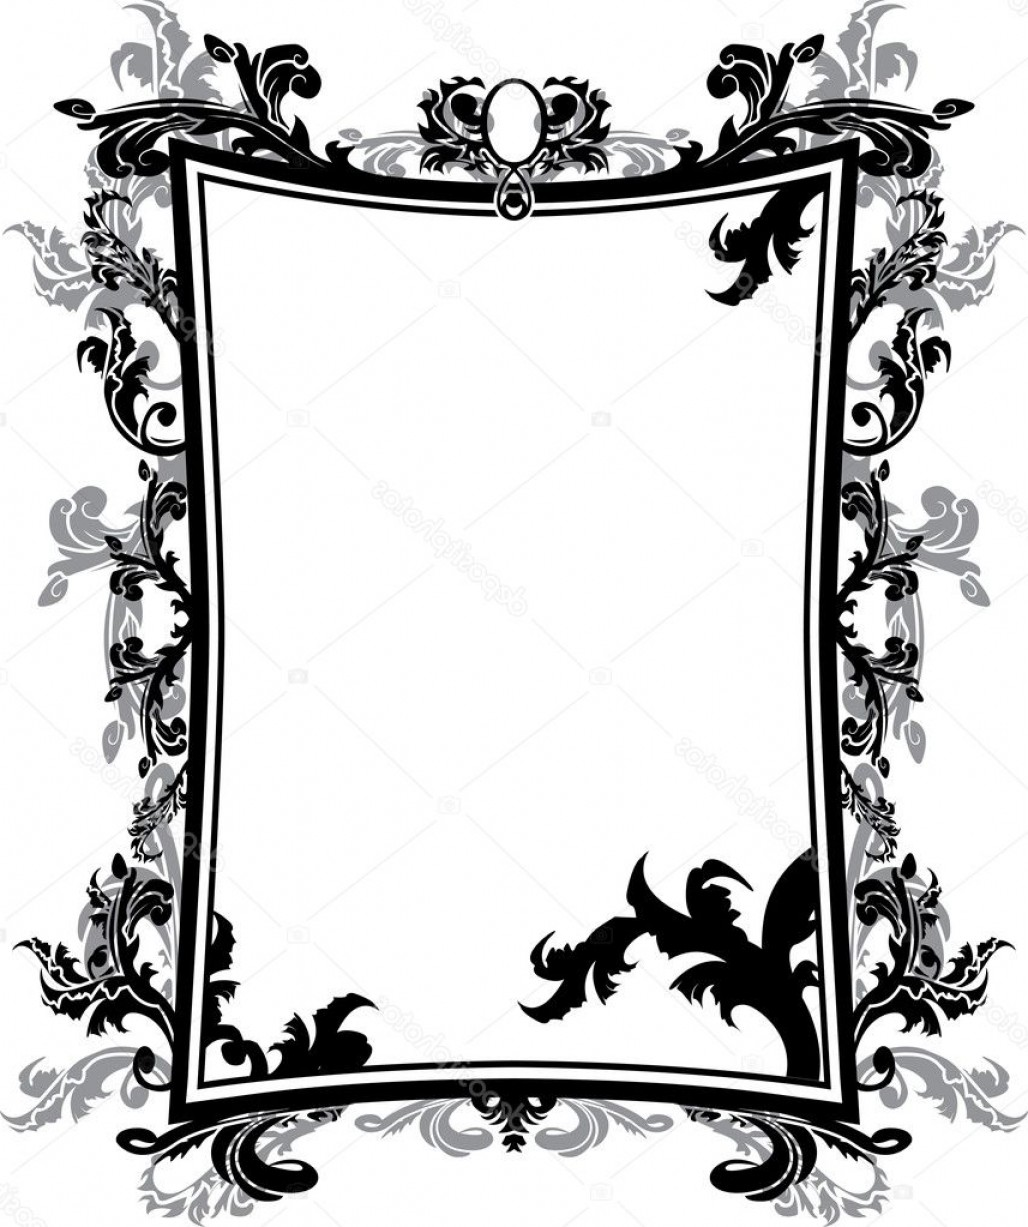 Vector Ornate Vintage Frame Blank: Stock Illustration Ornate Vintage Frame Stencil